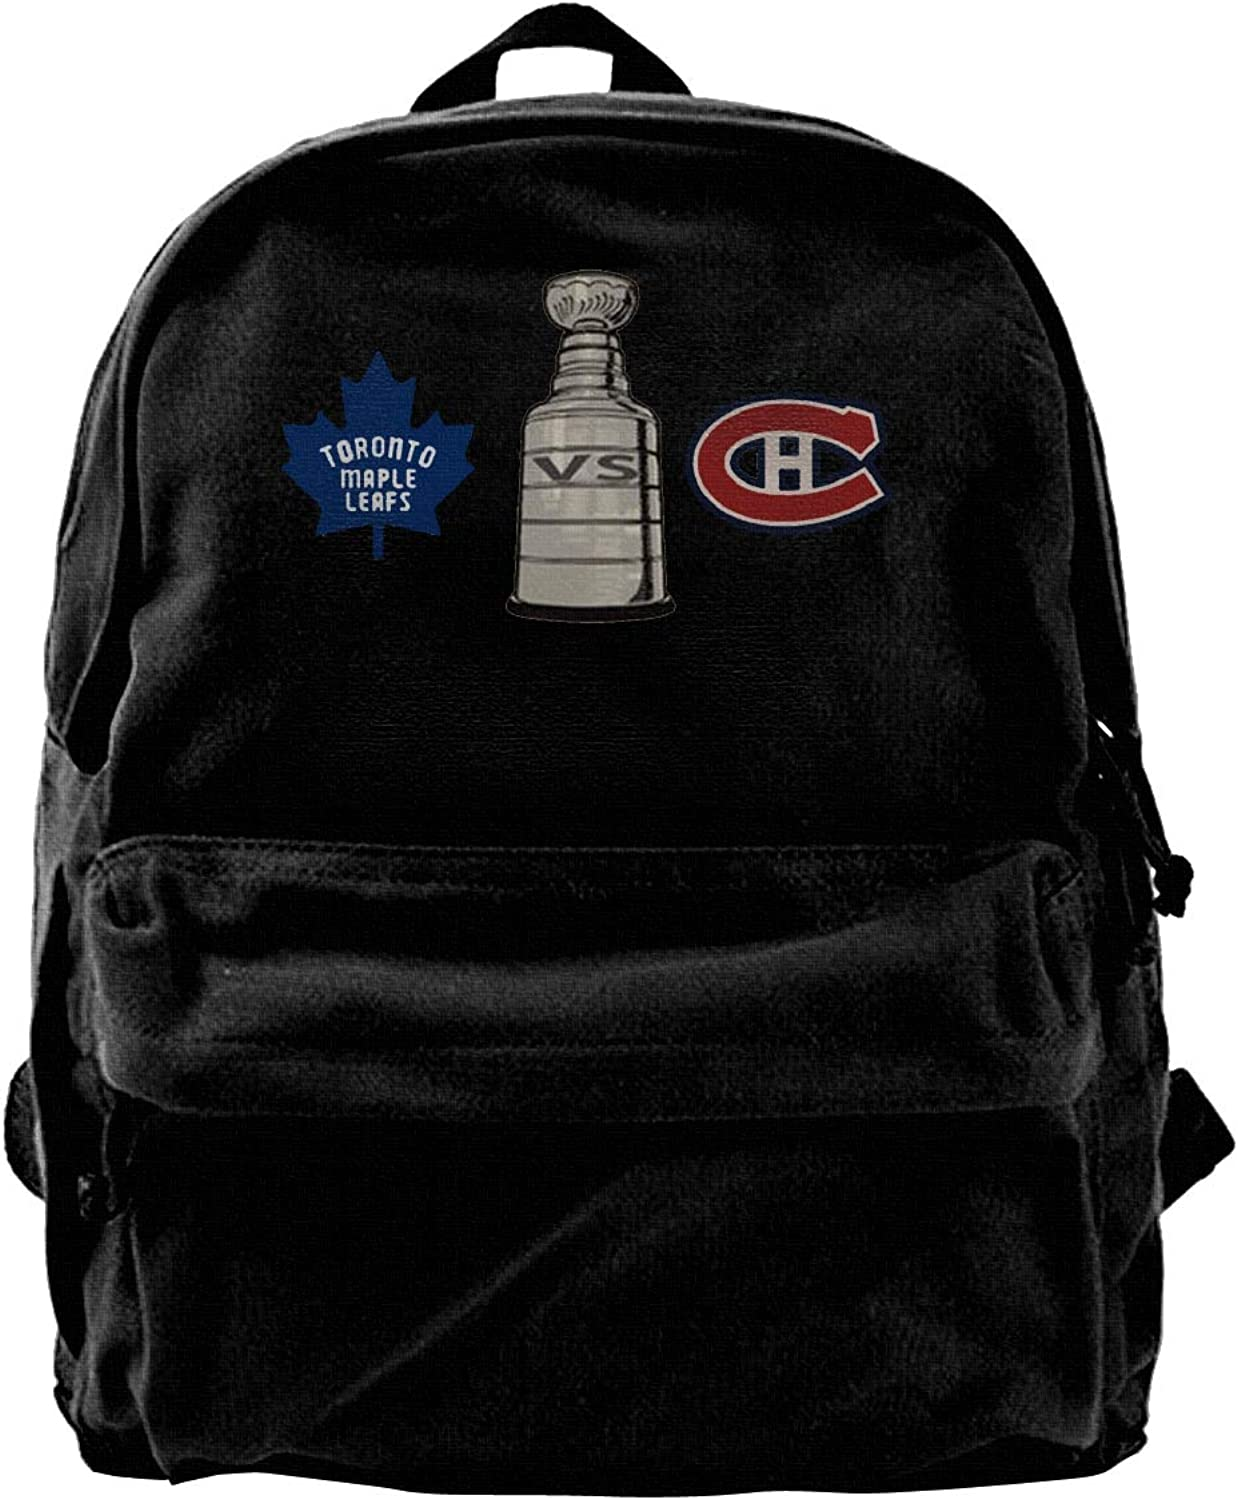 Canvas Backpack Stanley Cup Tgoldnto 14 Inch Laptop Casual School College Bags Travel Rucksack